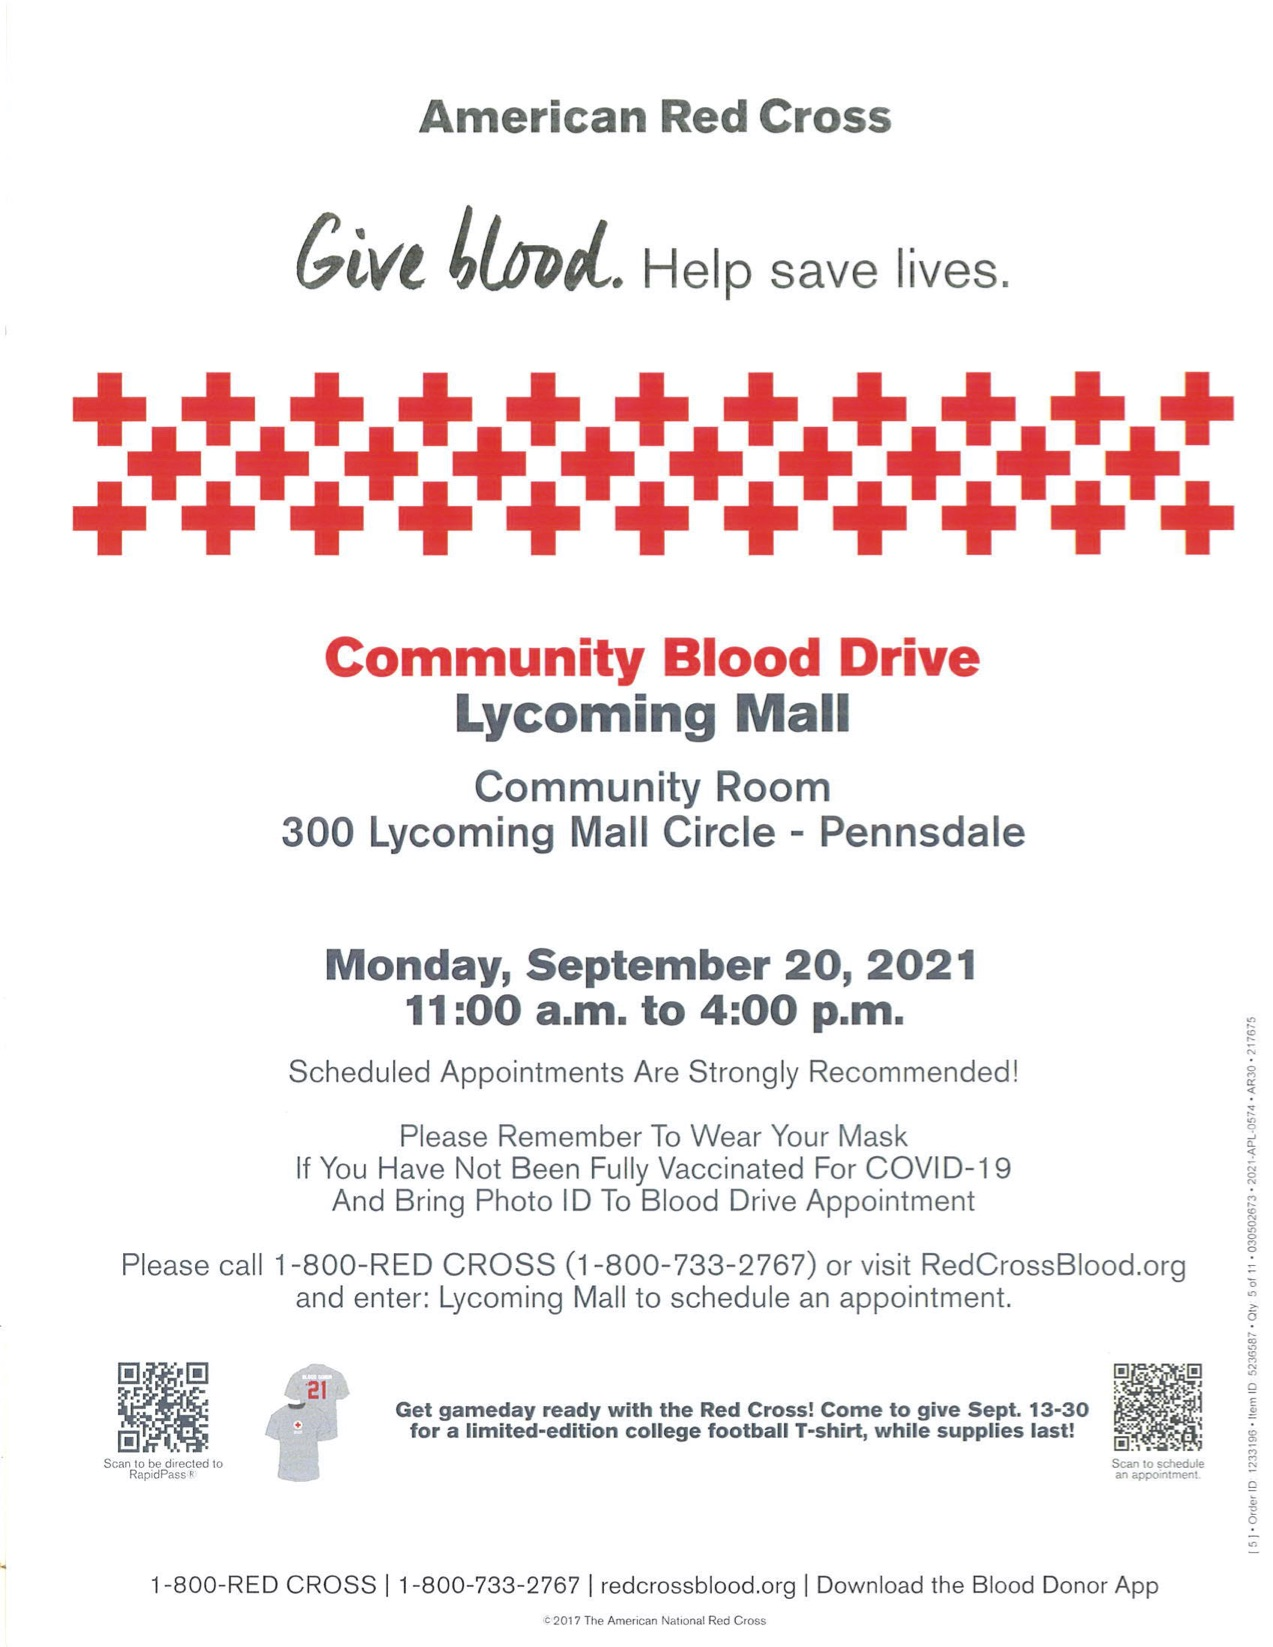 bloodmobile in the community room at lycoming mall presented by american red cross